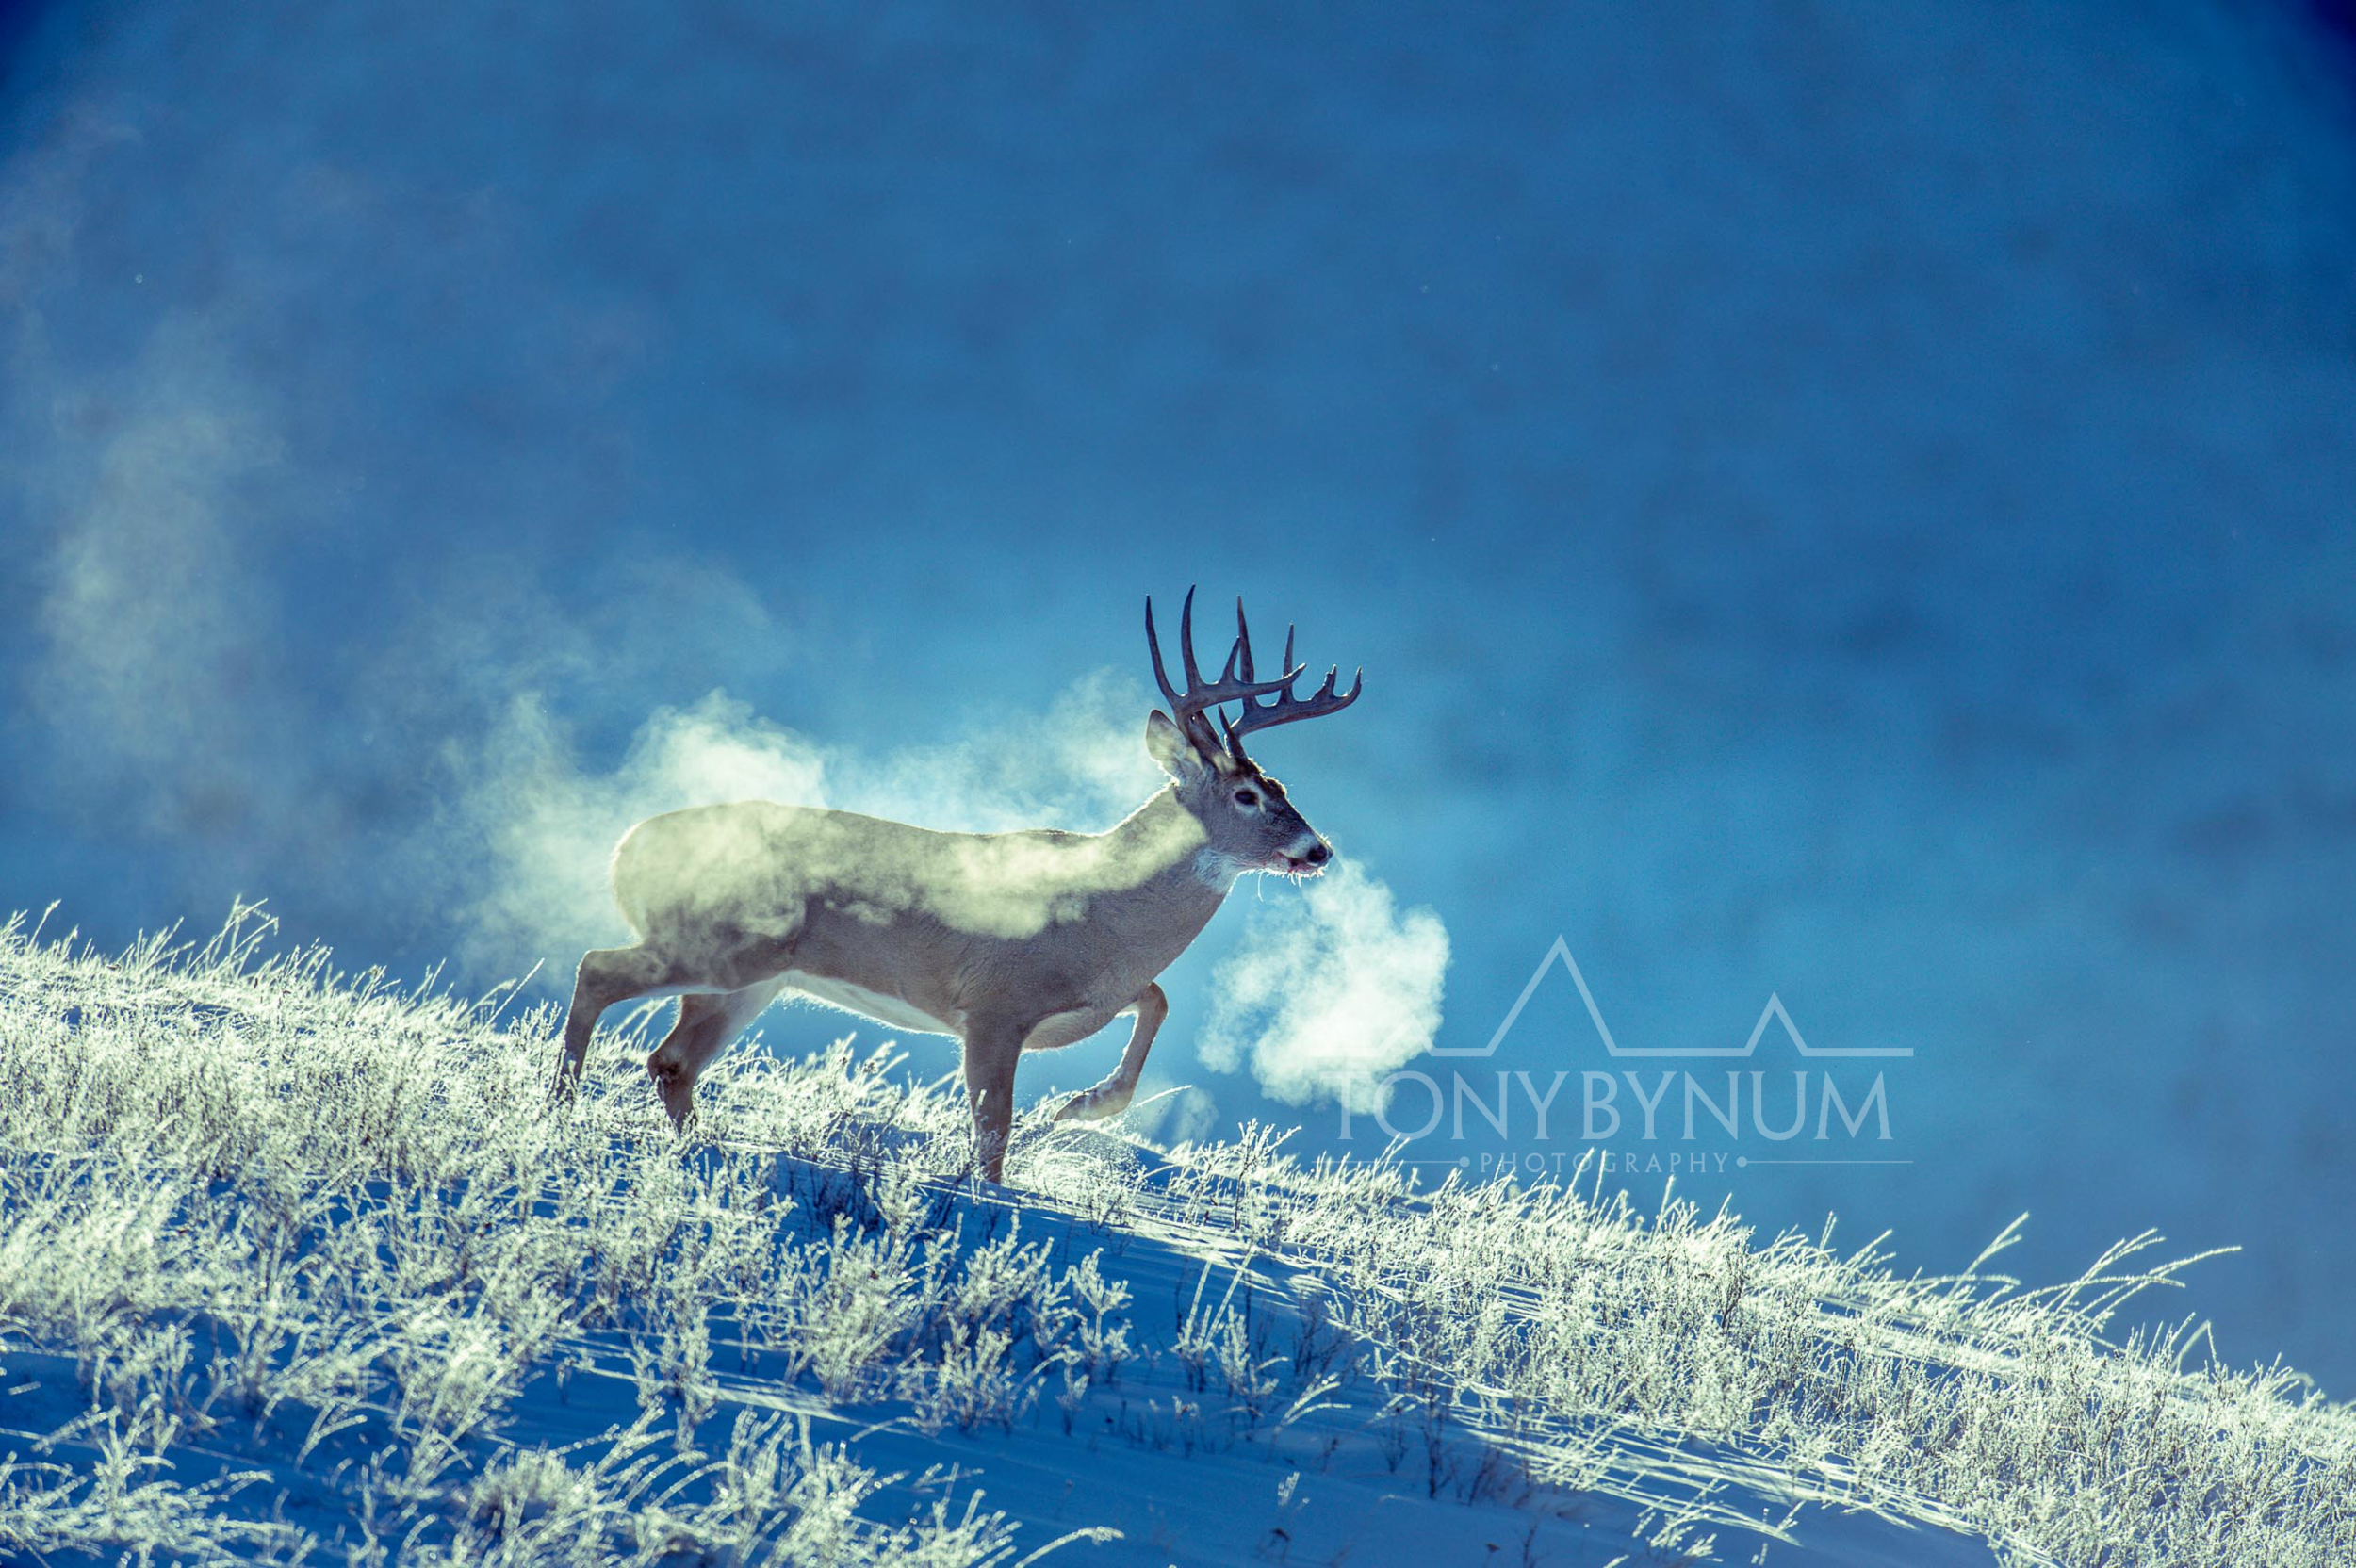 tony-bynum-whitetail-cold